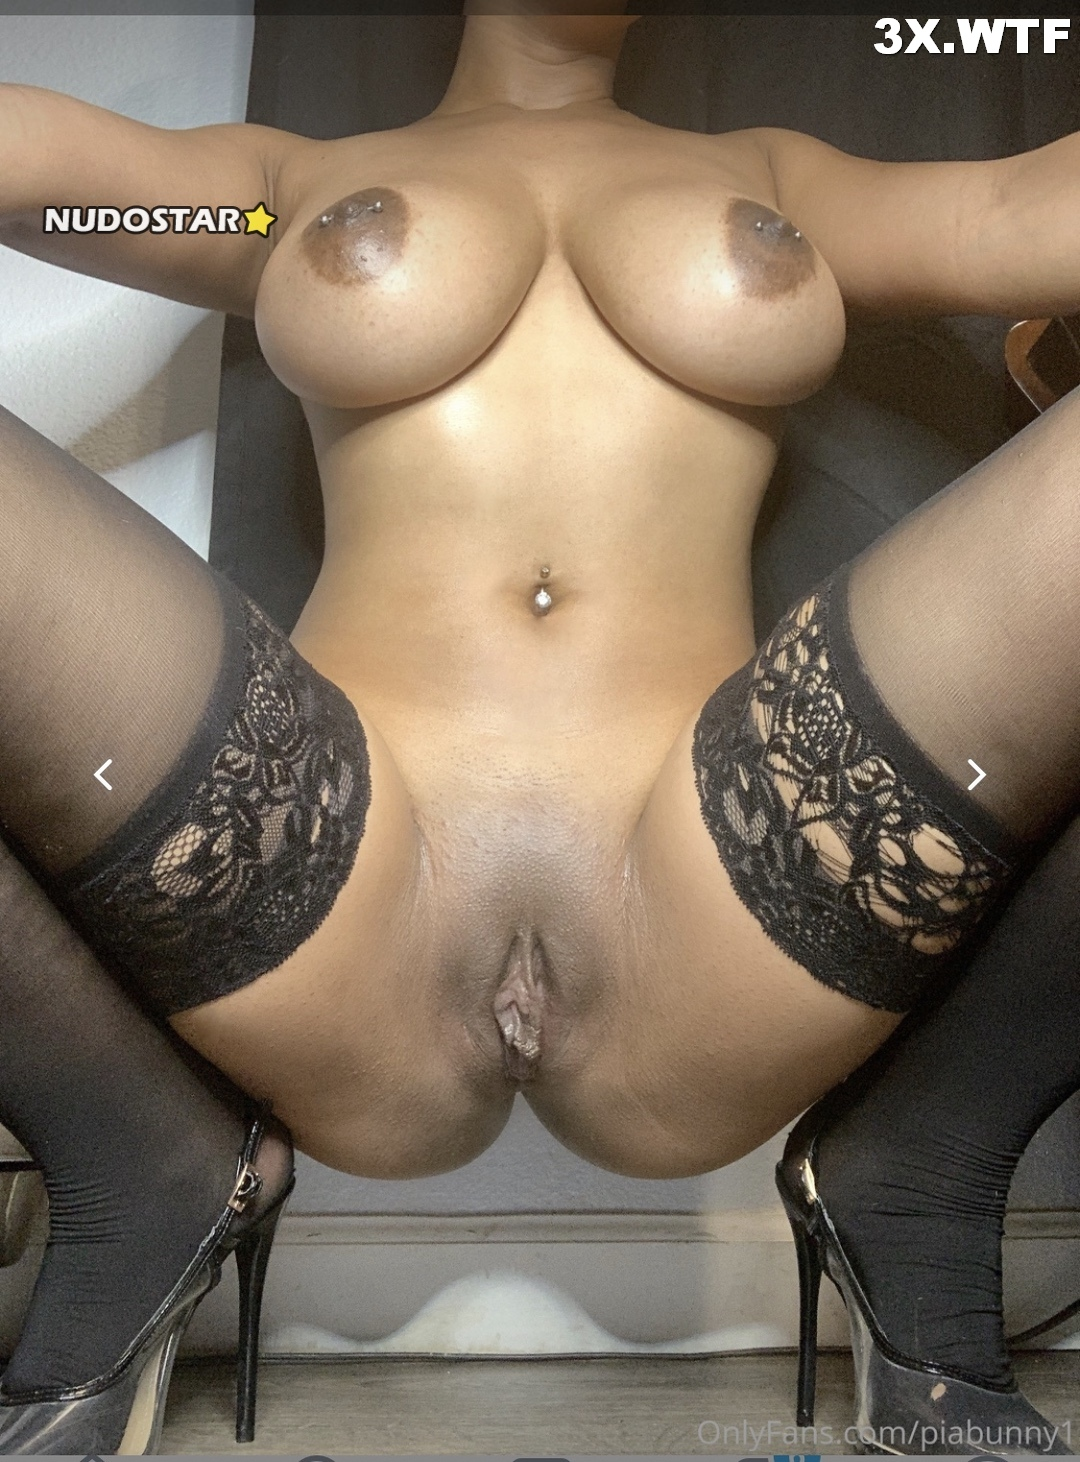 Piabunny1 Onlyfans Nudes Leaks 0018